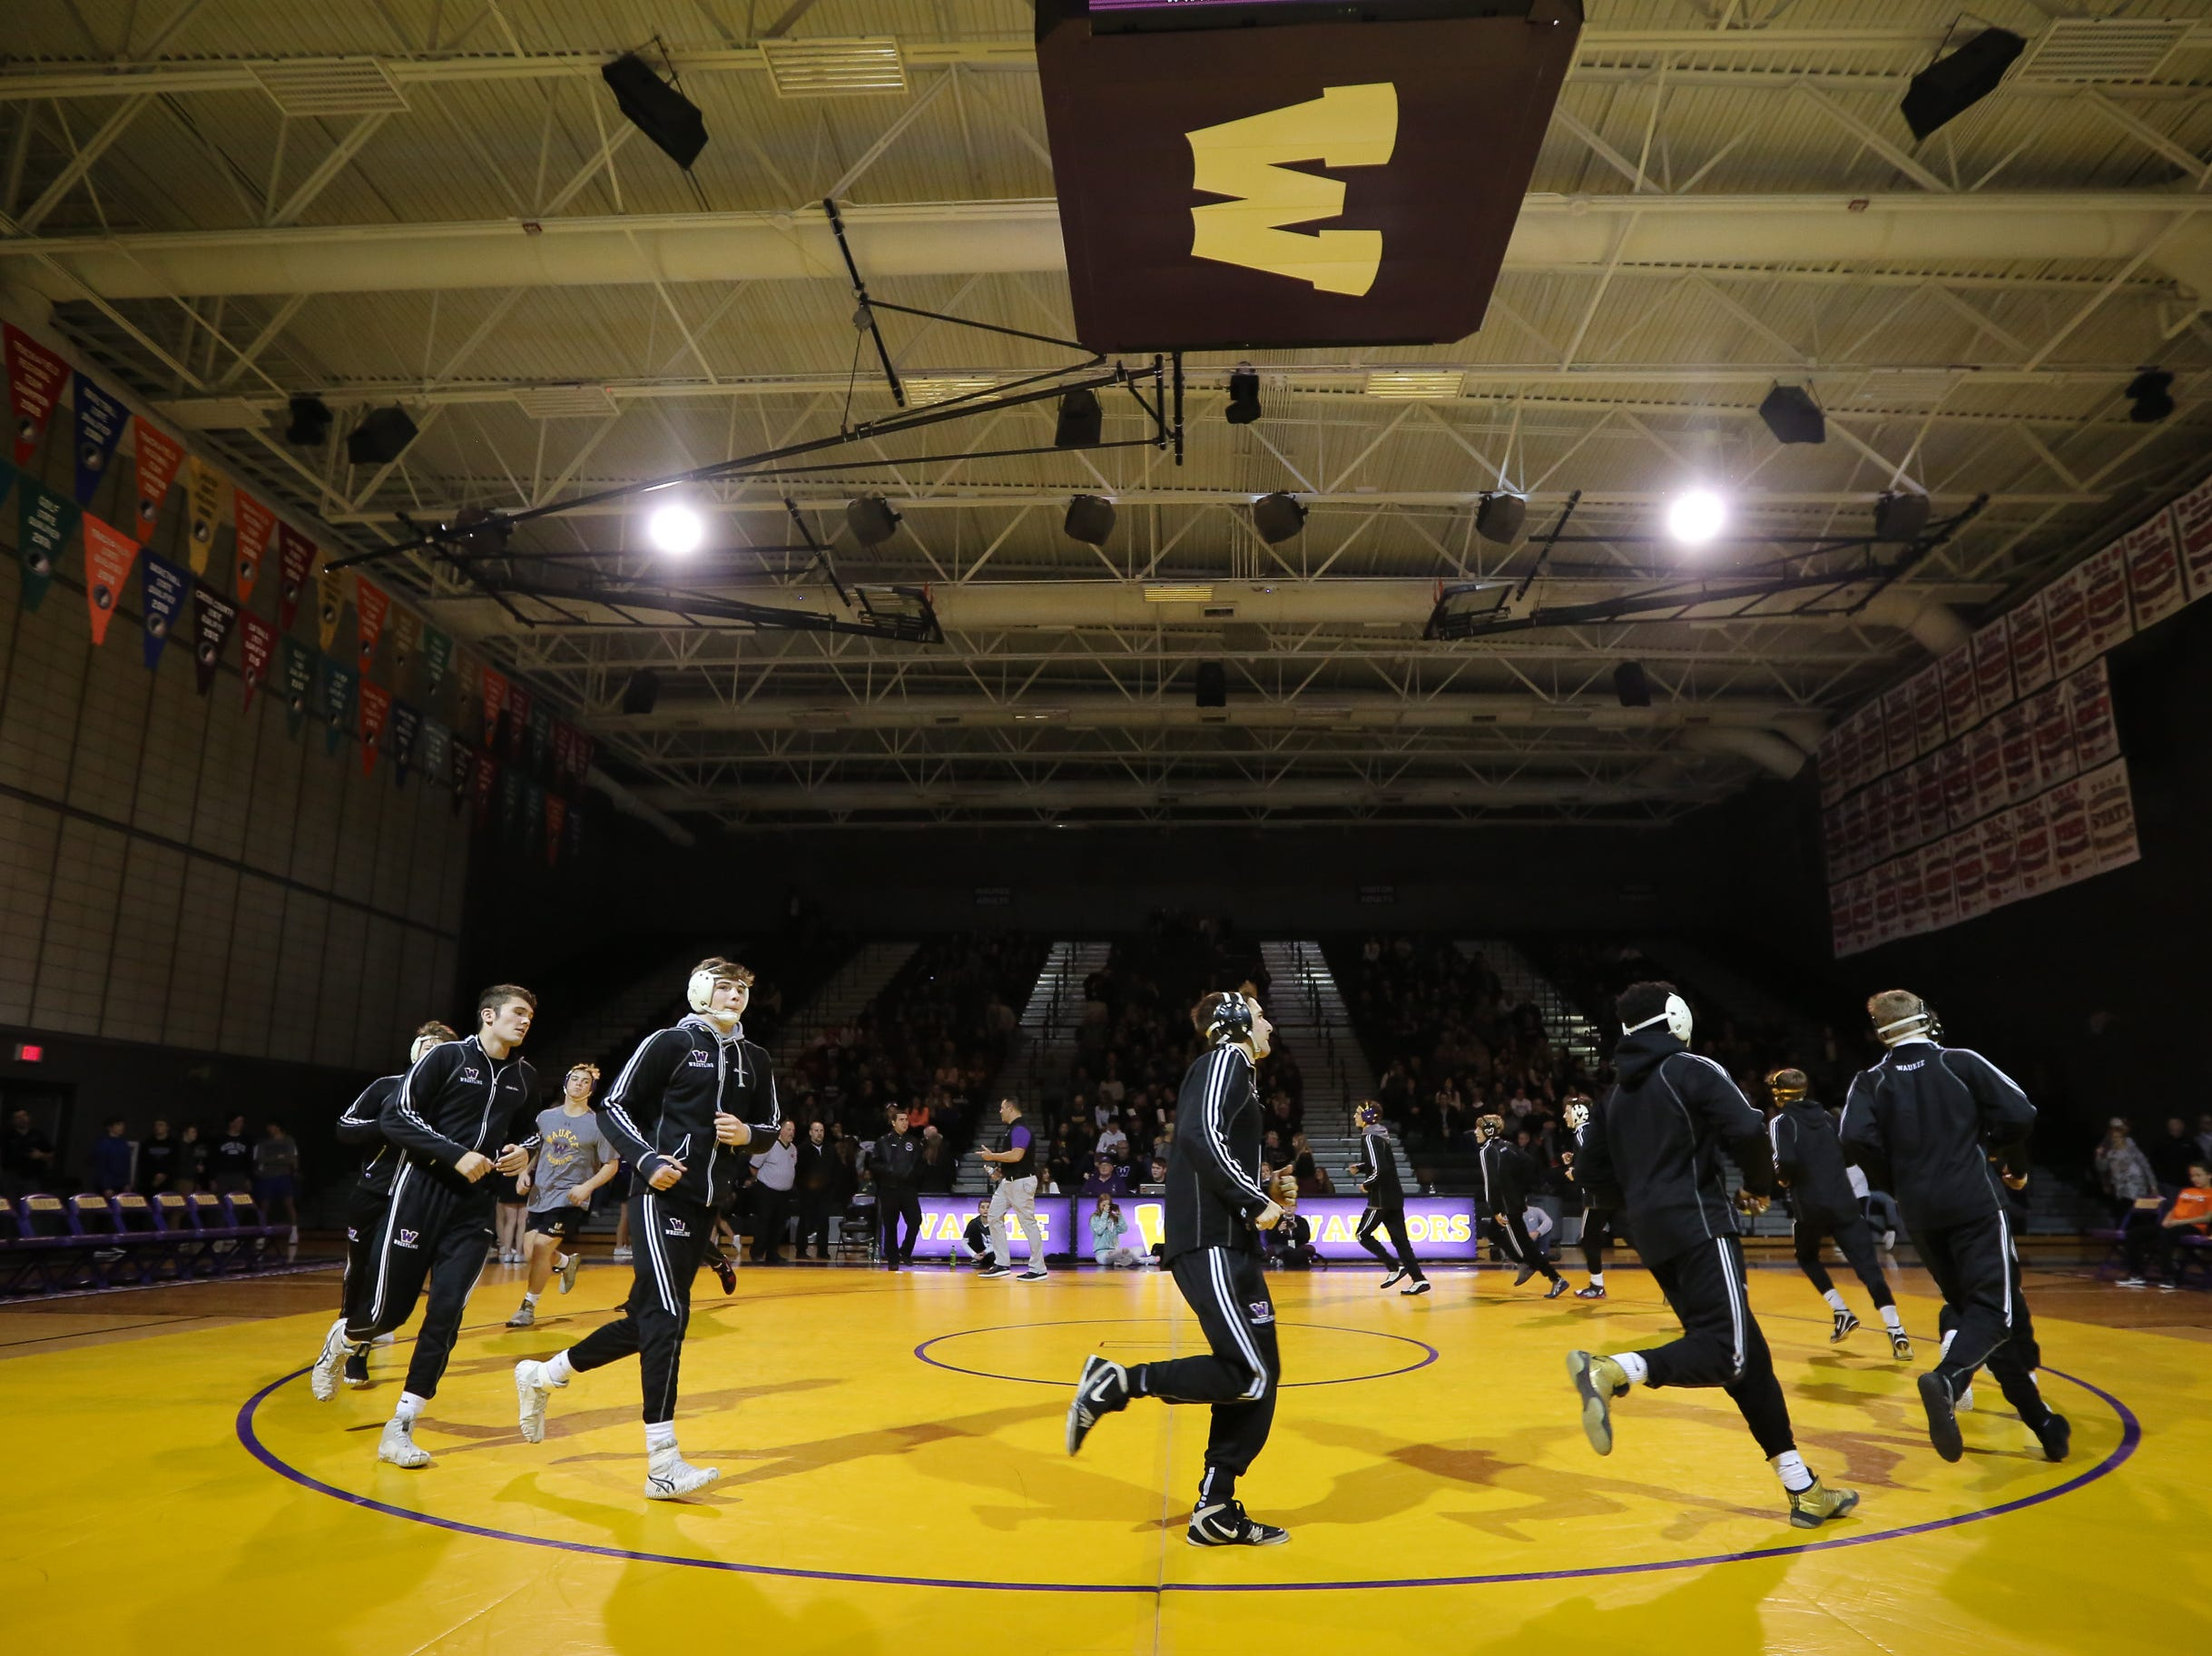 The Waukee Warriors wrestling team takes the mat before a high school wrestling meet against the Valley Tigers at Waukee High School on Dec. 20, 2018 in Waukee, Iowa.